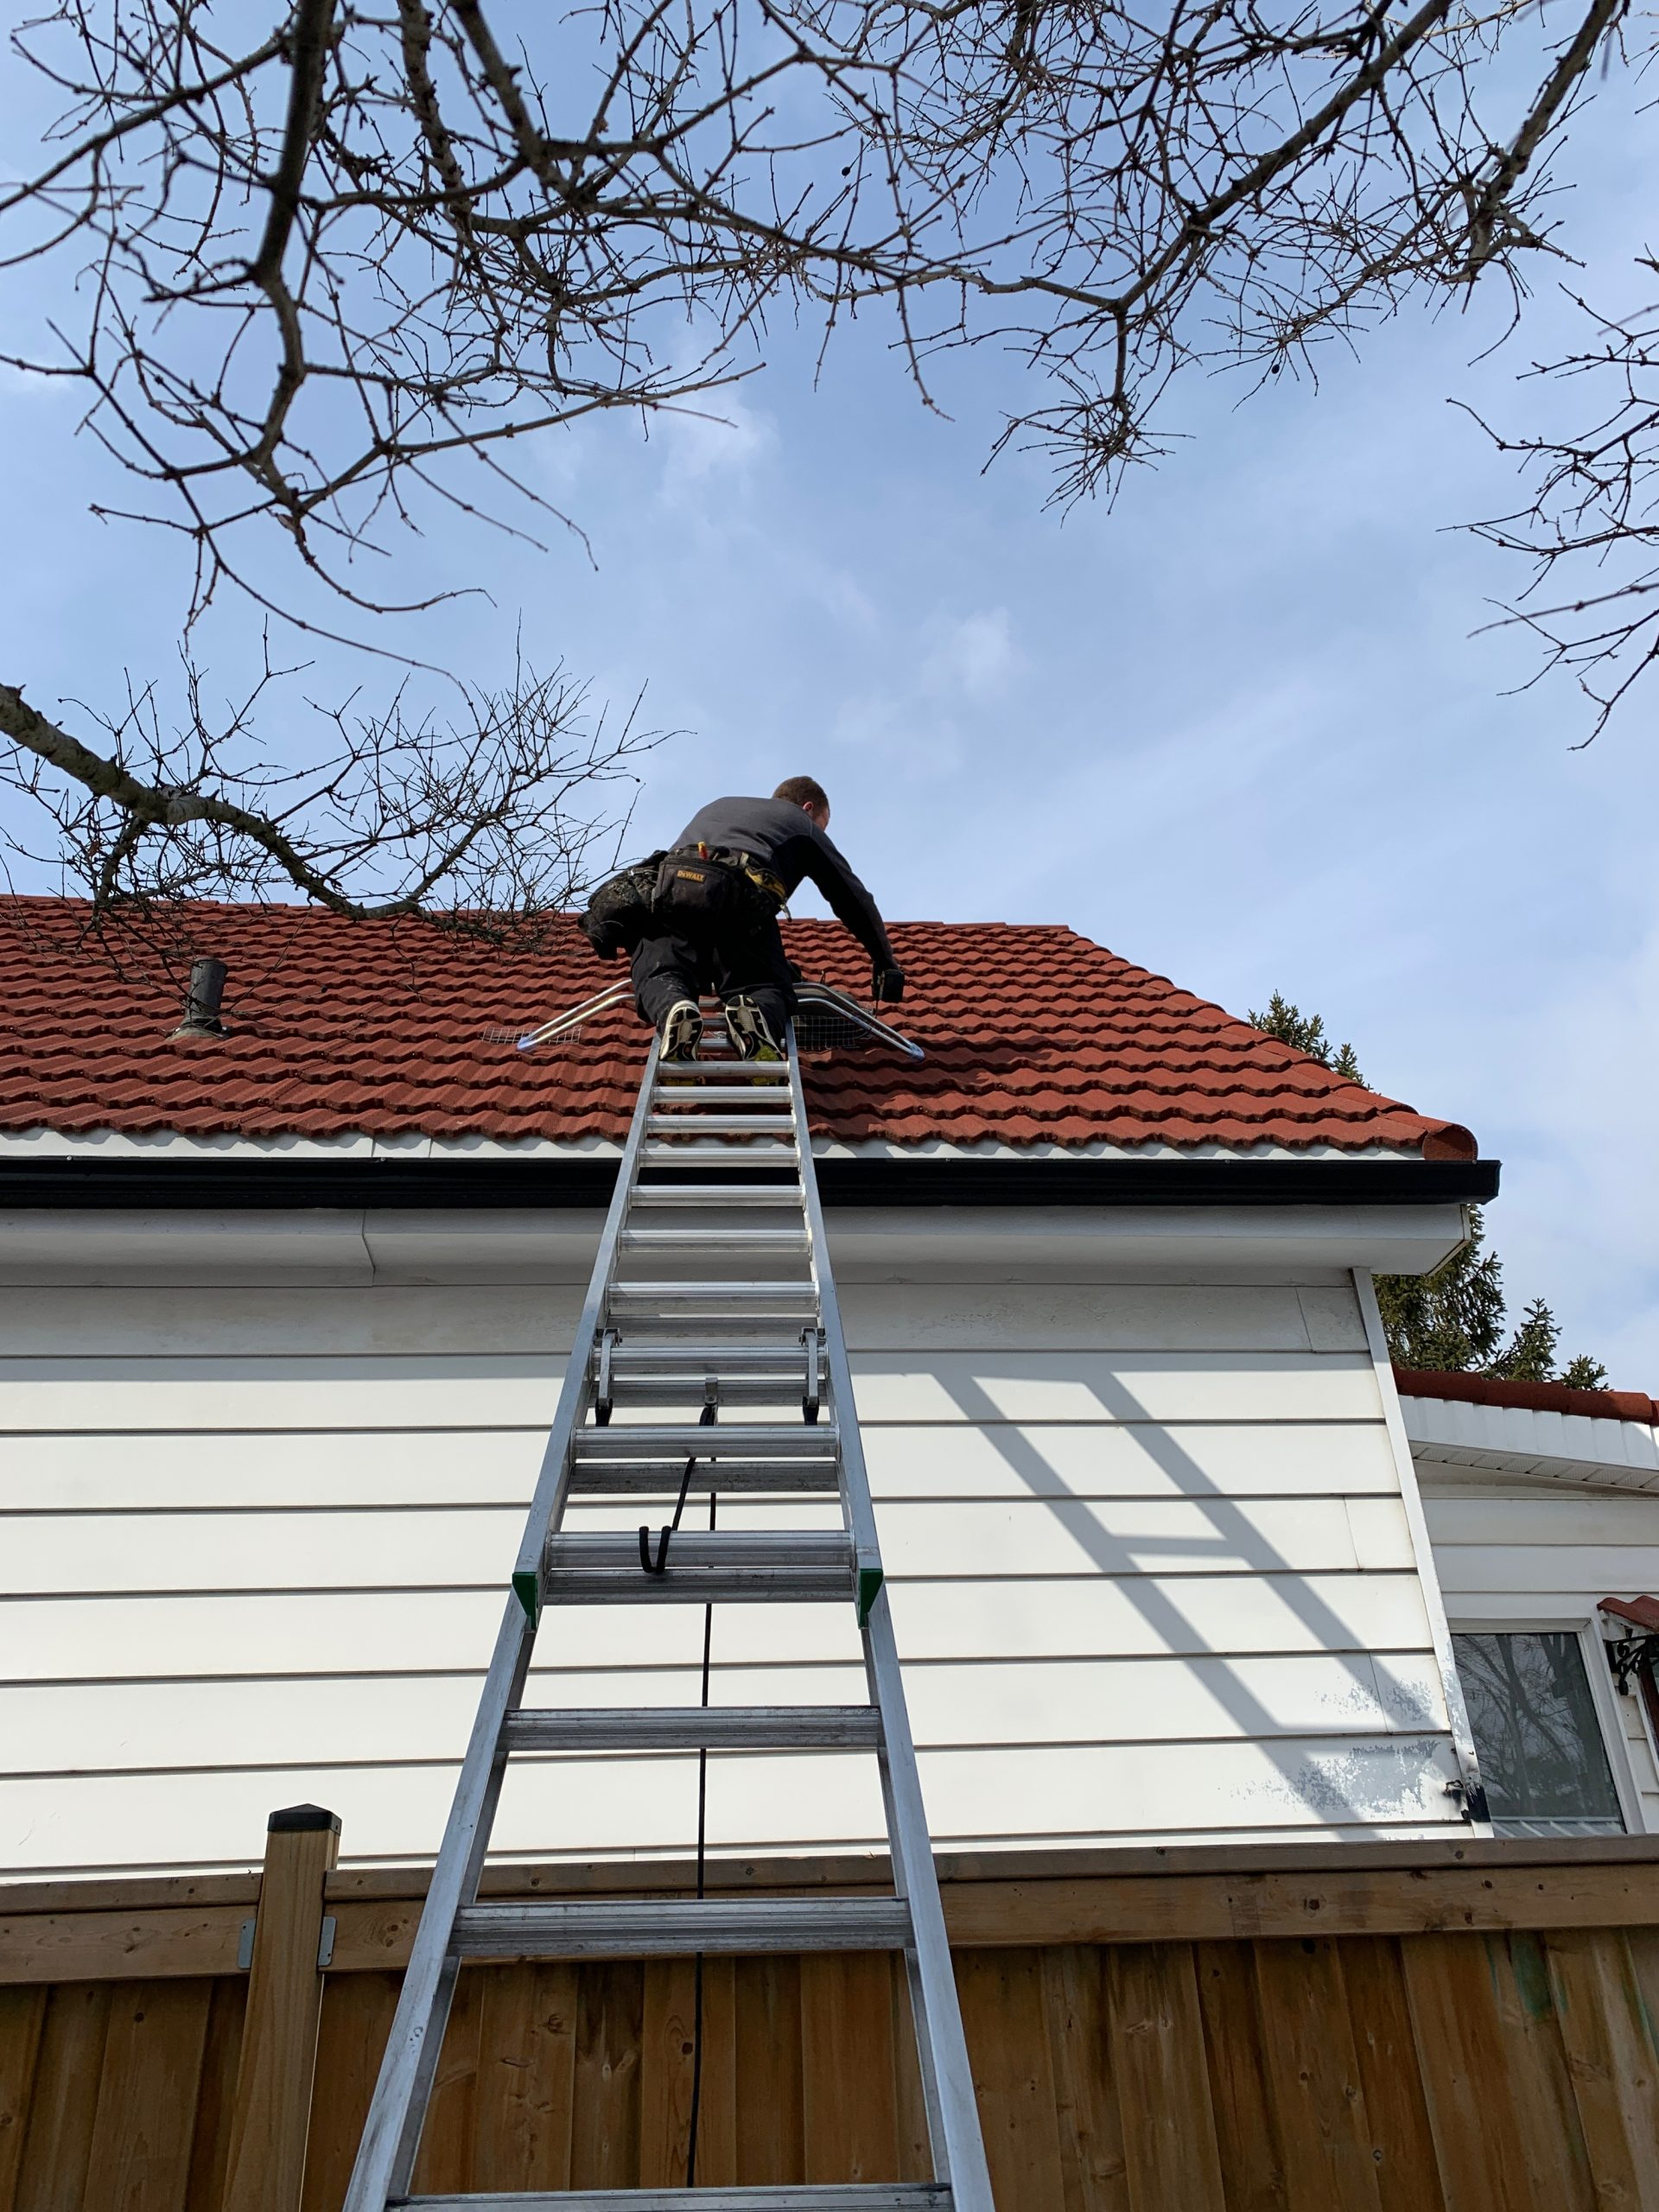 wildlife technician on a roof